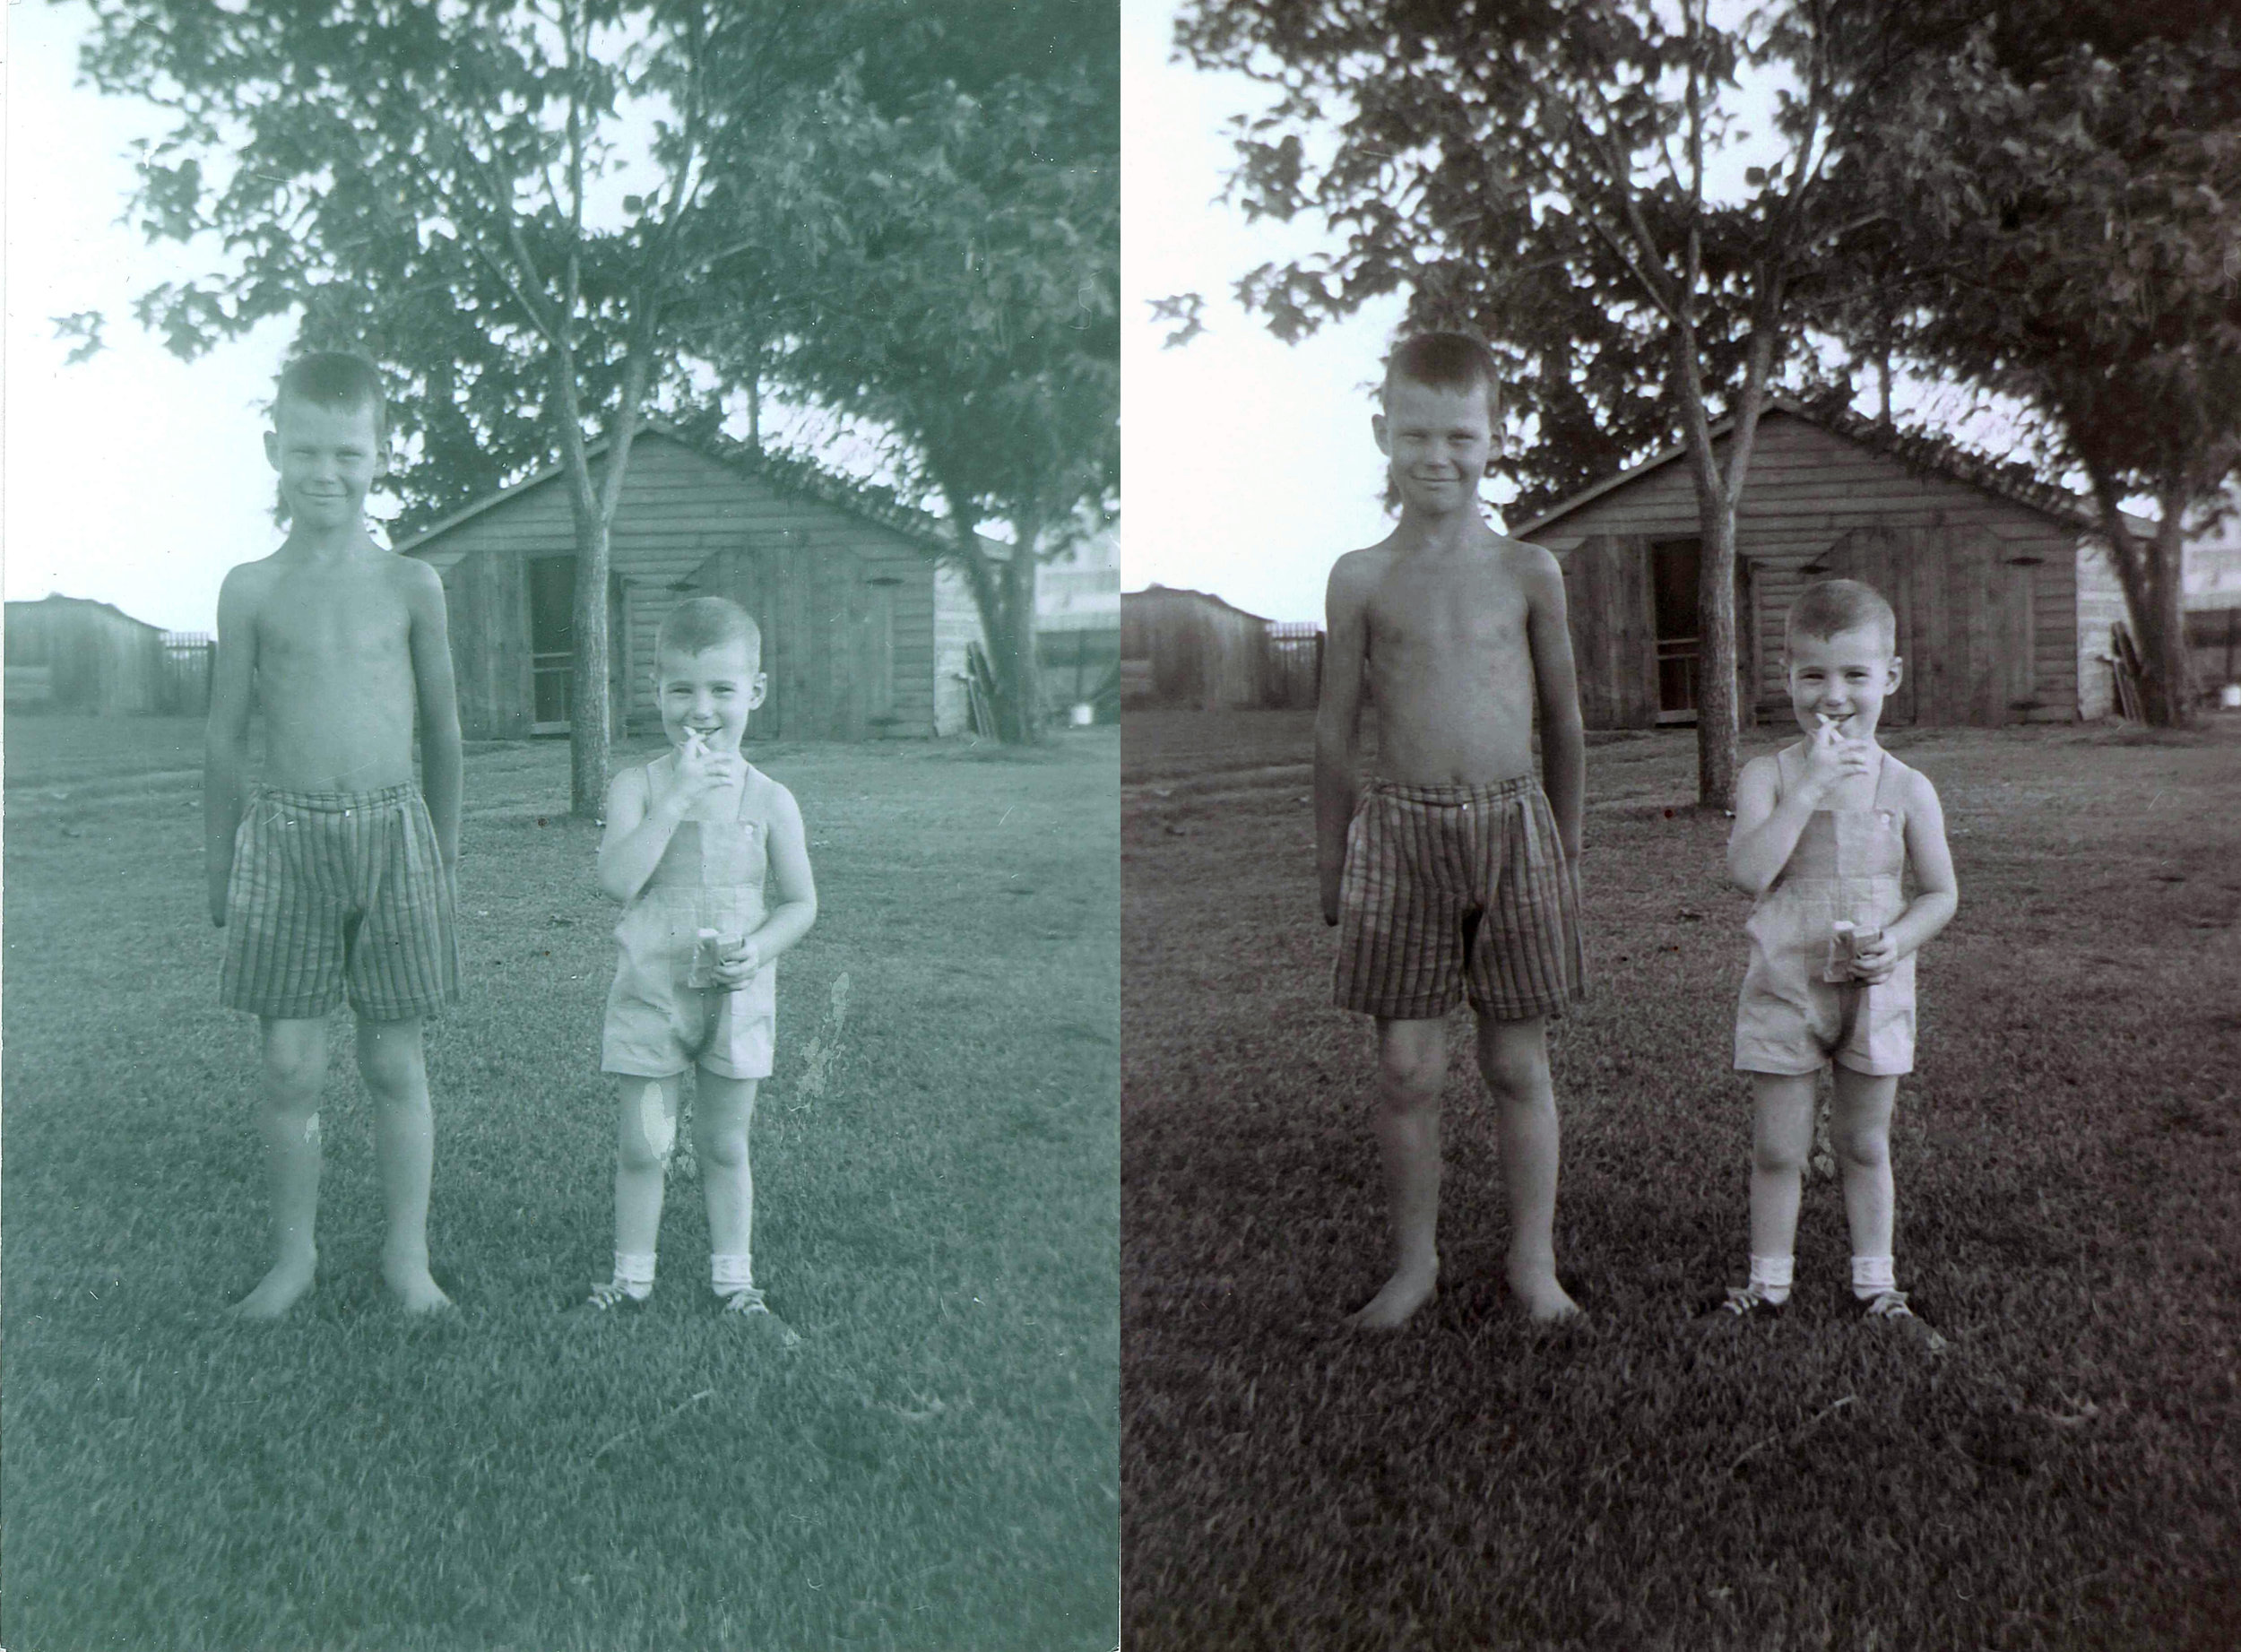 Seve and Brother - Before and after